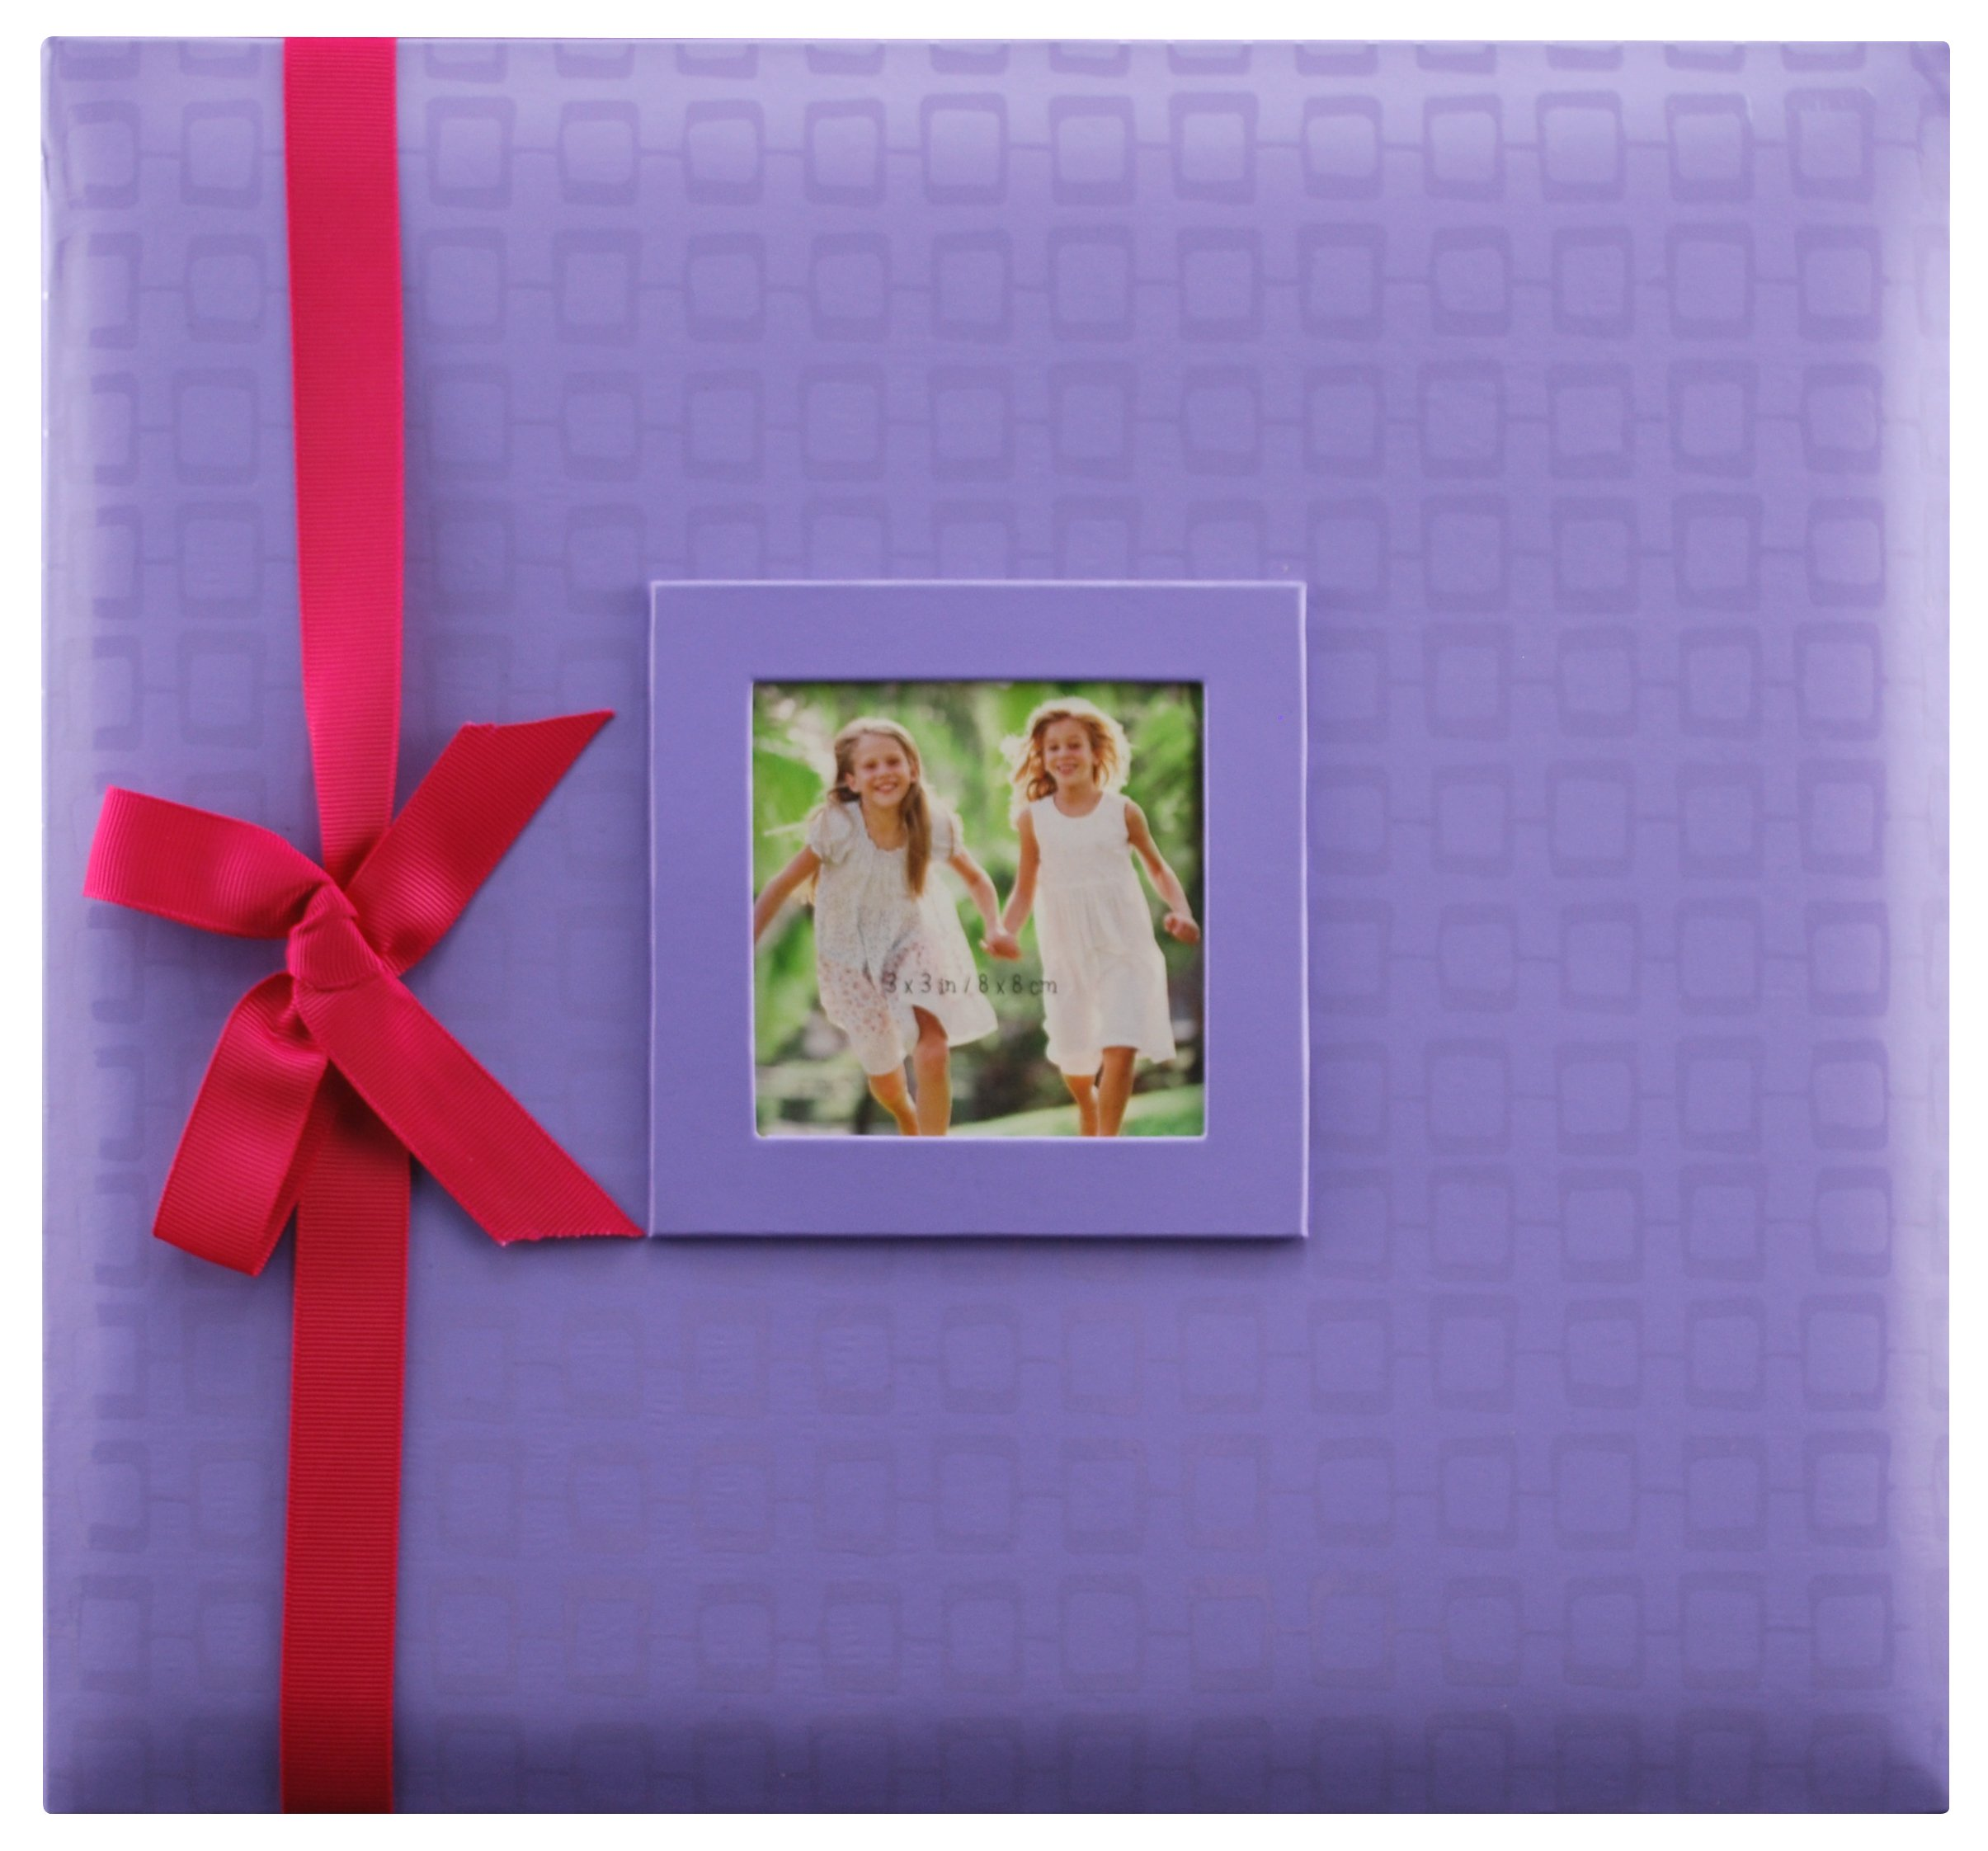 MCS MBI 13.5x12.5 Inch Embossed Gloss Brights Scrapbook Album with 12x12 Inch Pages, Purple (866930)